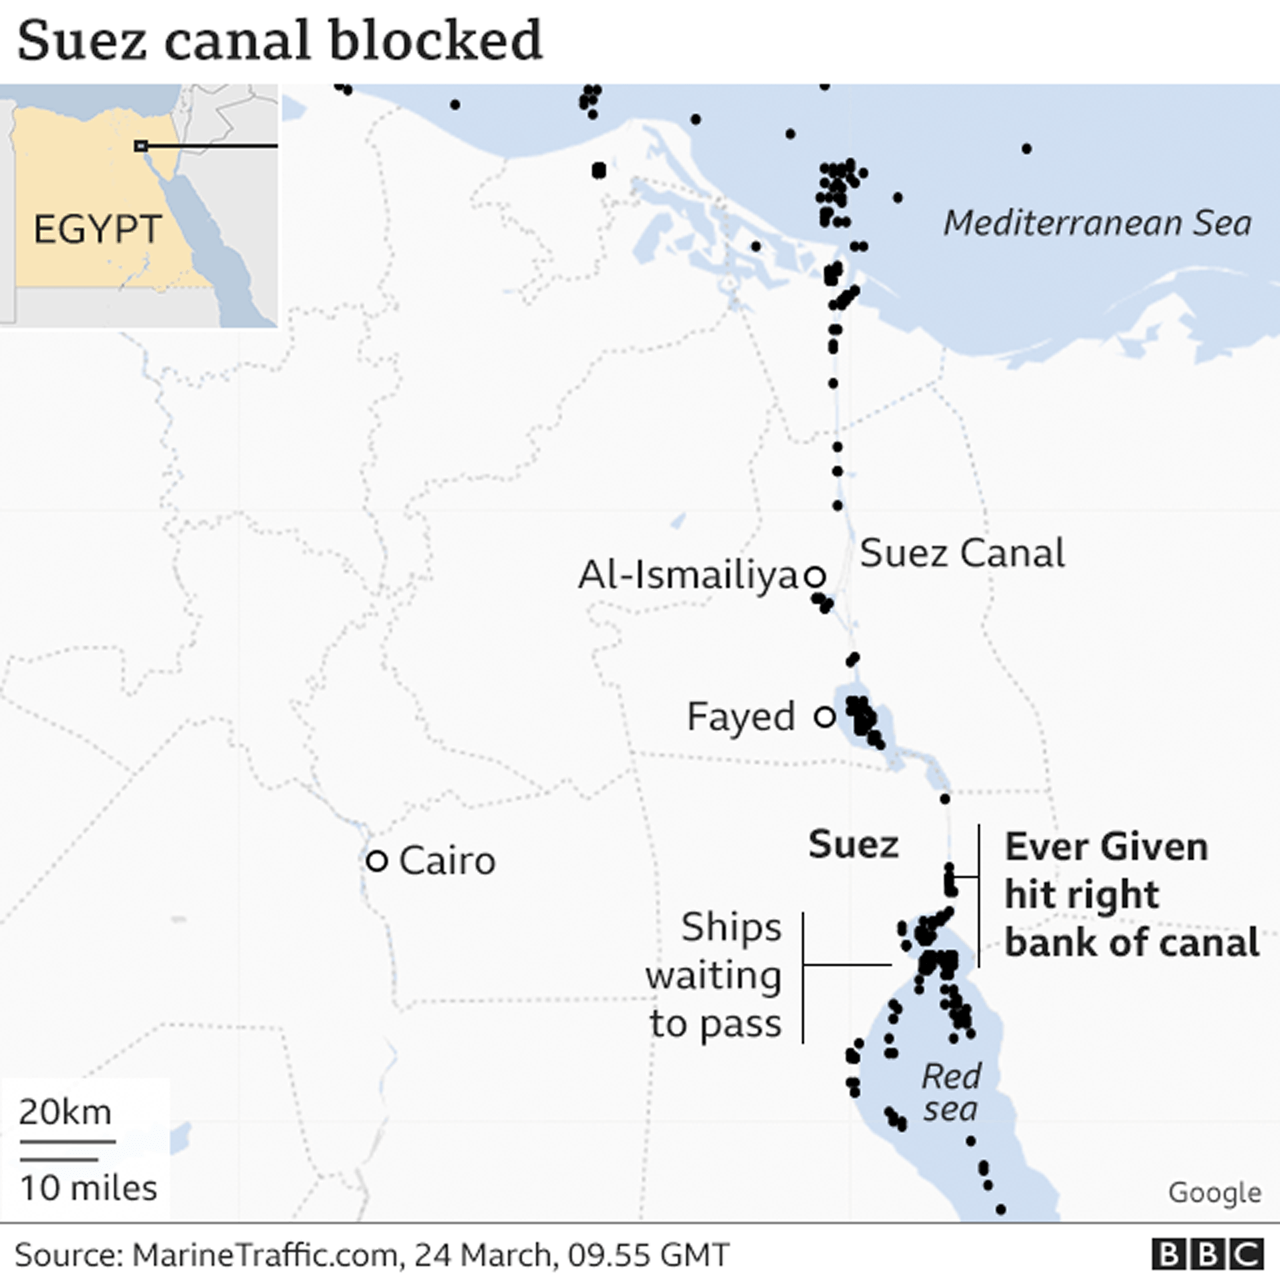 Egypt's Suez Canal blocked by huge container ship - BBC News